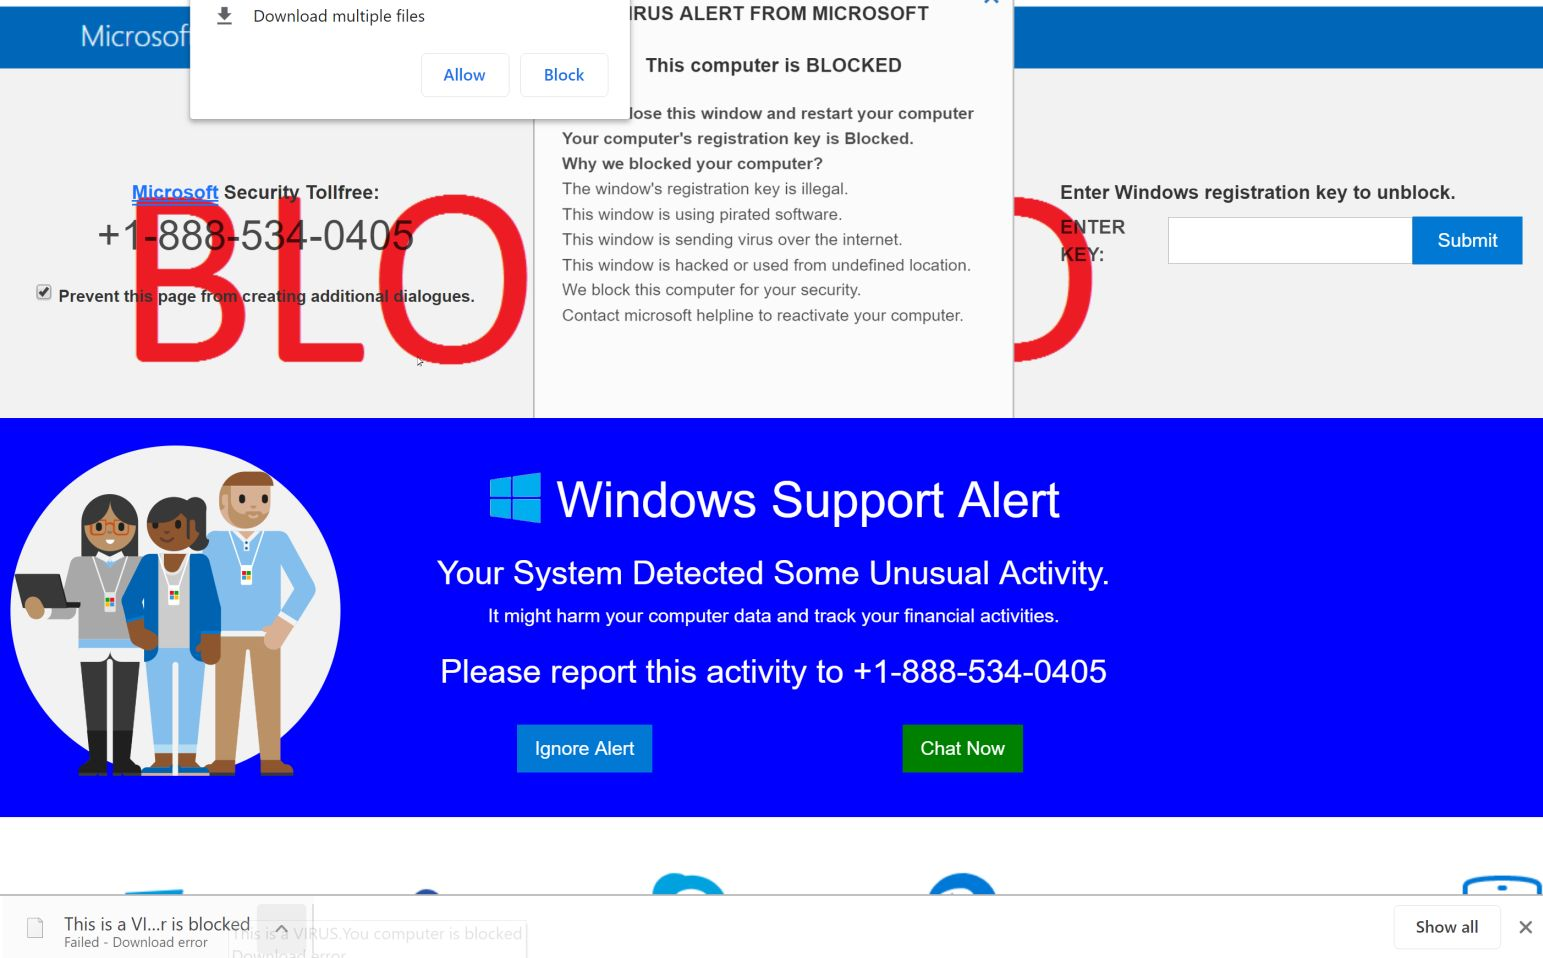 Image: This is a VIRUS. Your computer is blocked - Tech Support Scam